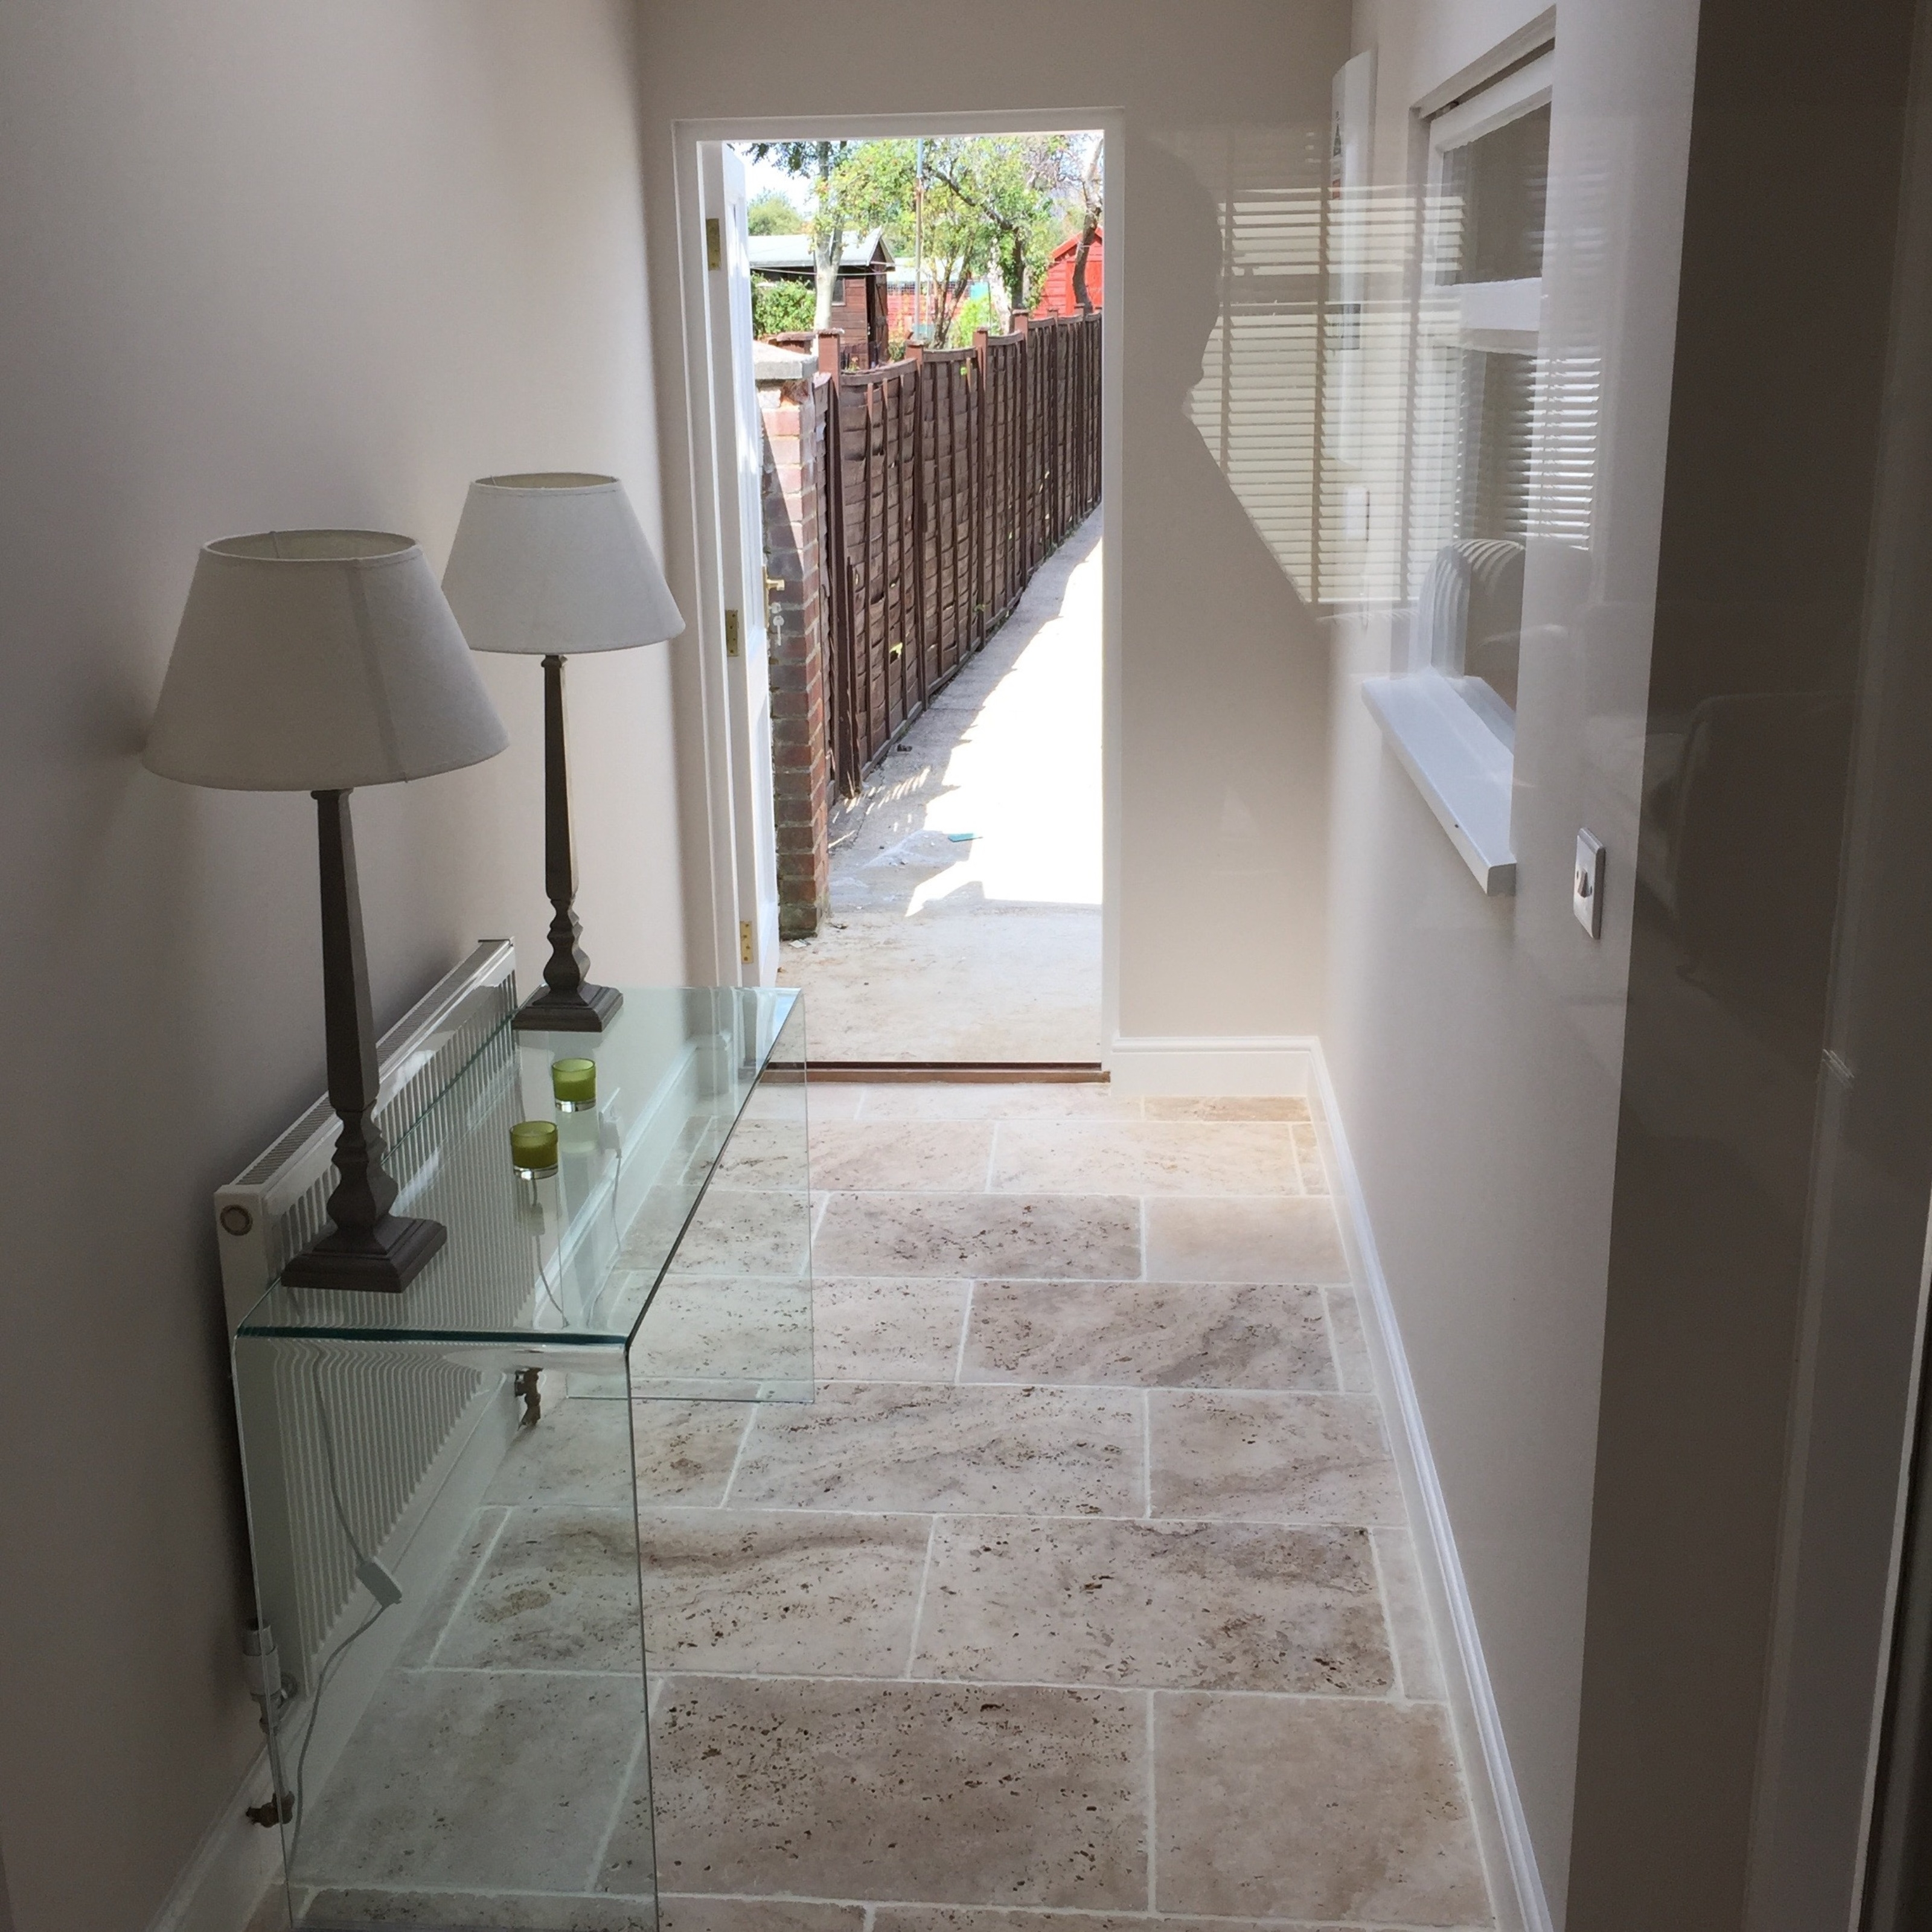 House hallway interior design with glass table